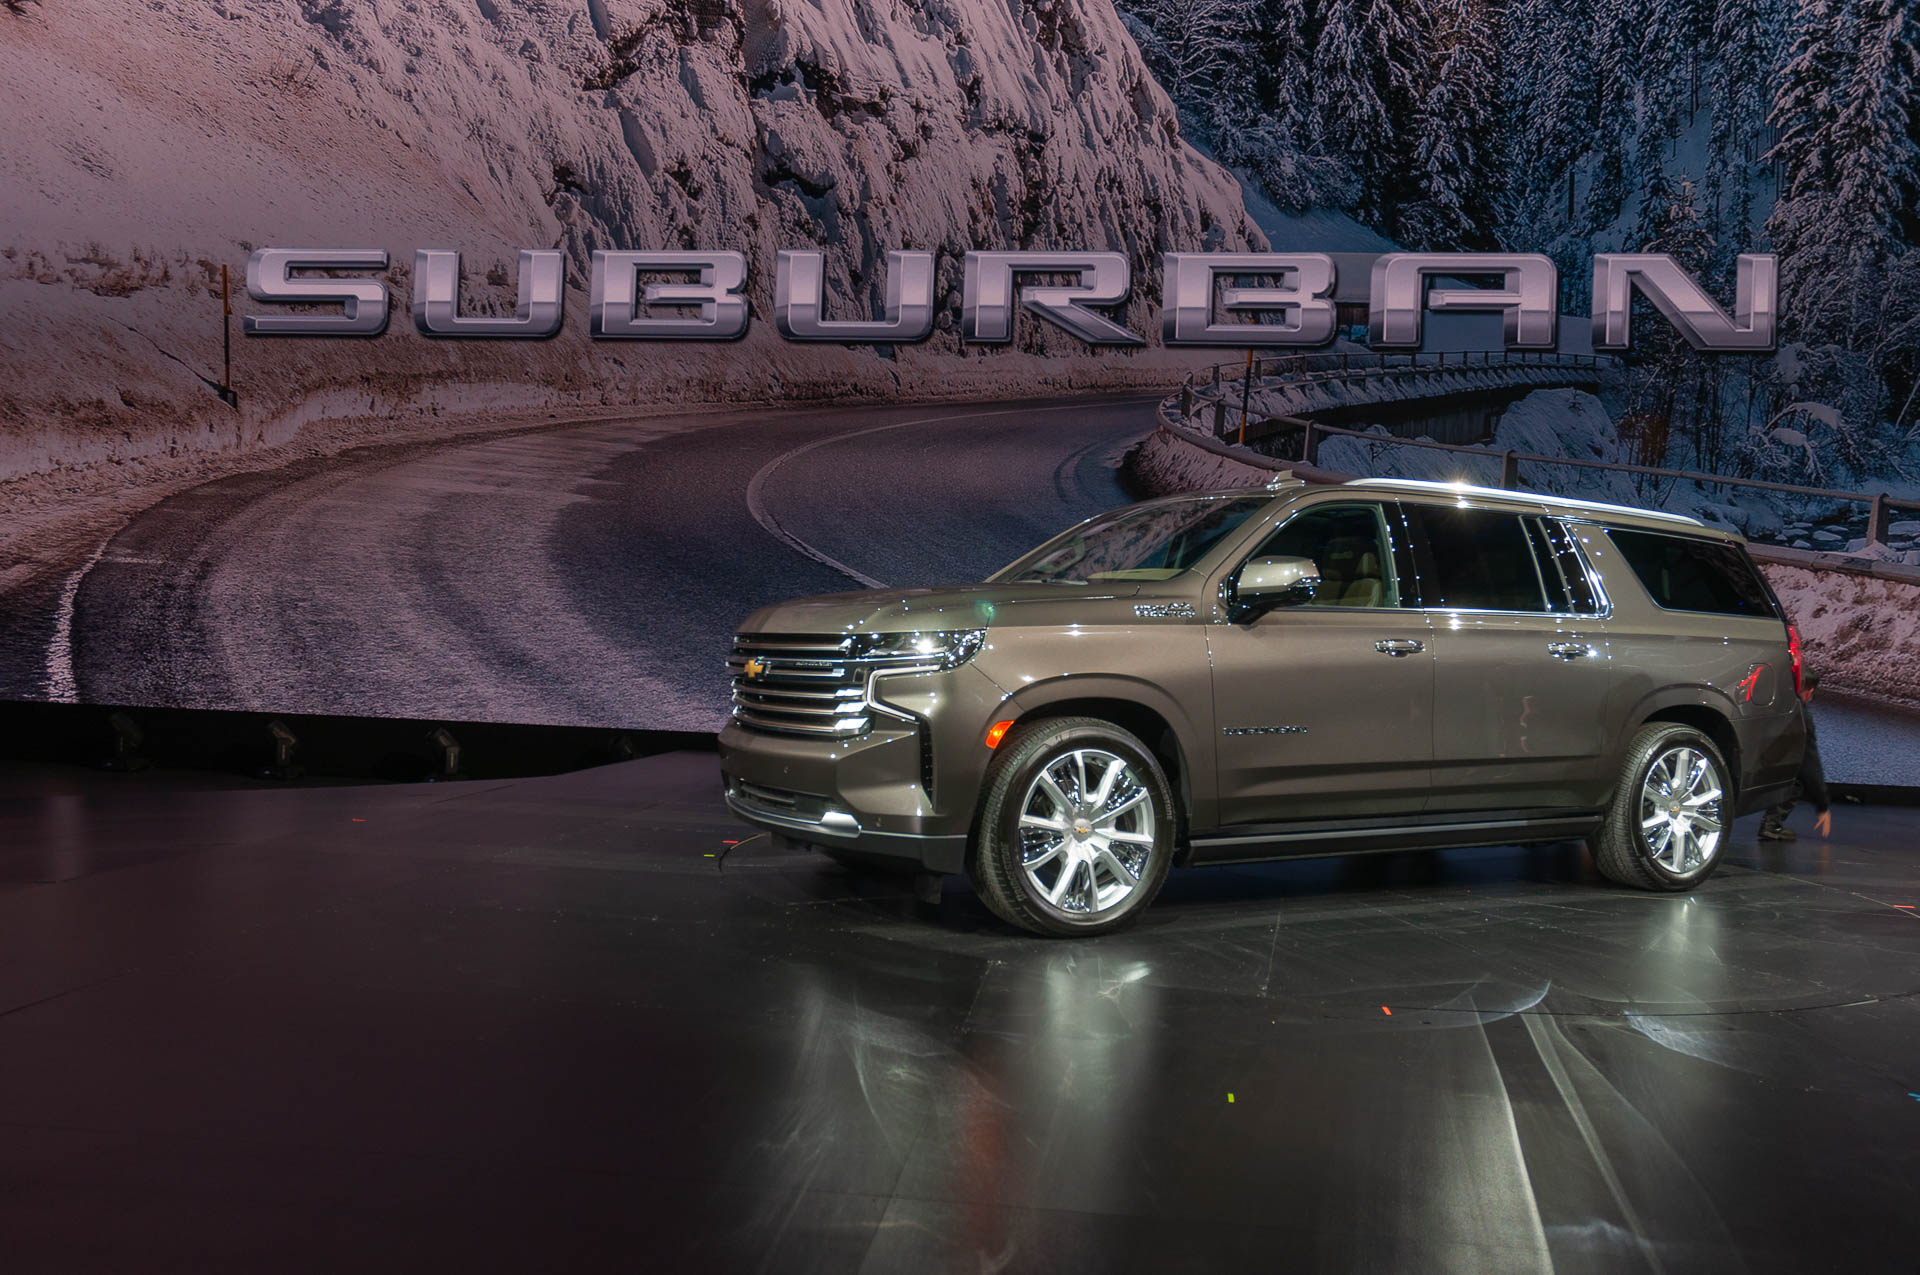 Redesigned 2021 Chevrolet Tahoe And Suburban Gain Size 2021 Chevrolet Silverado Inventory, Mpg, Msrp